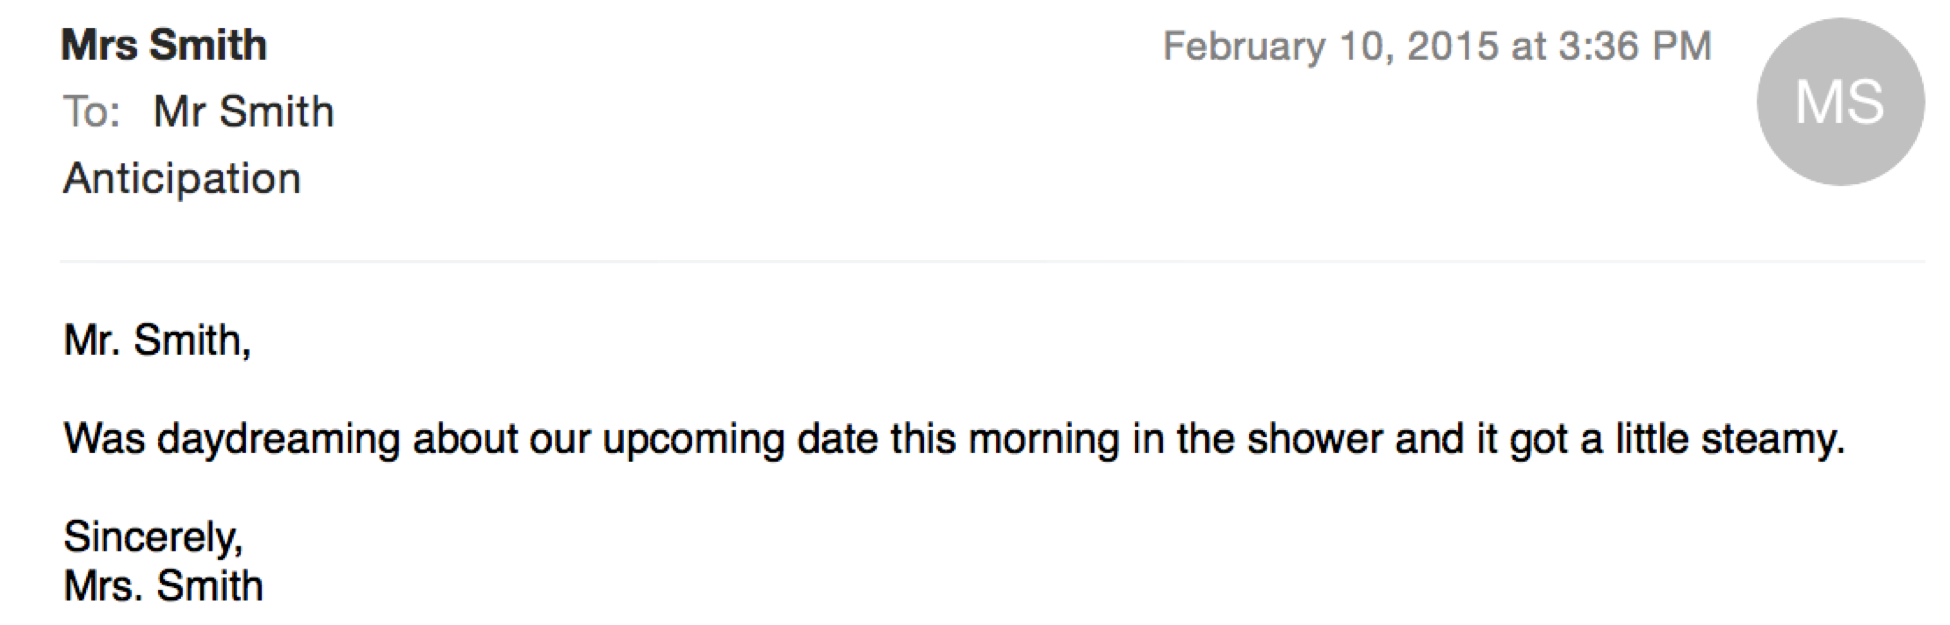 sexting_email.png